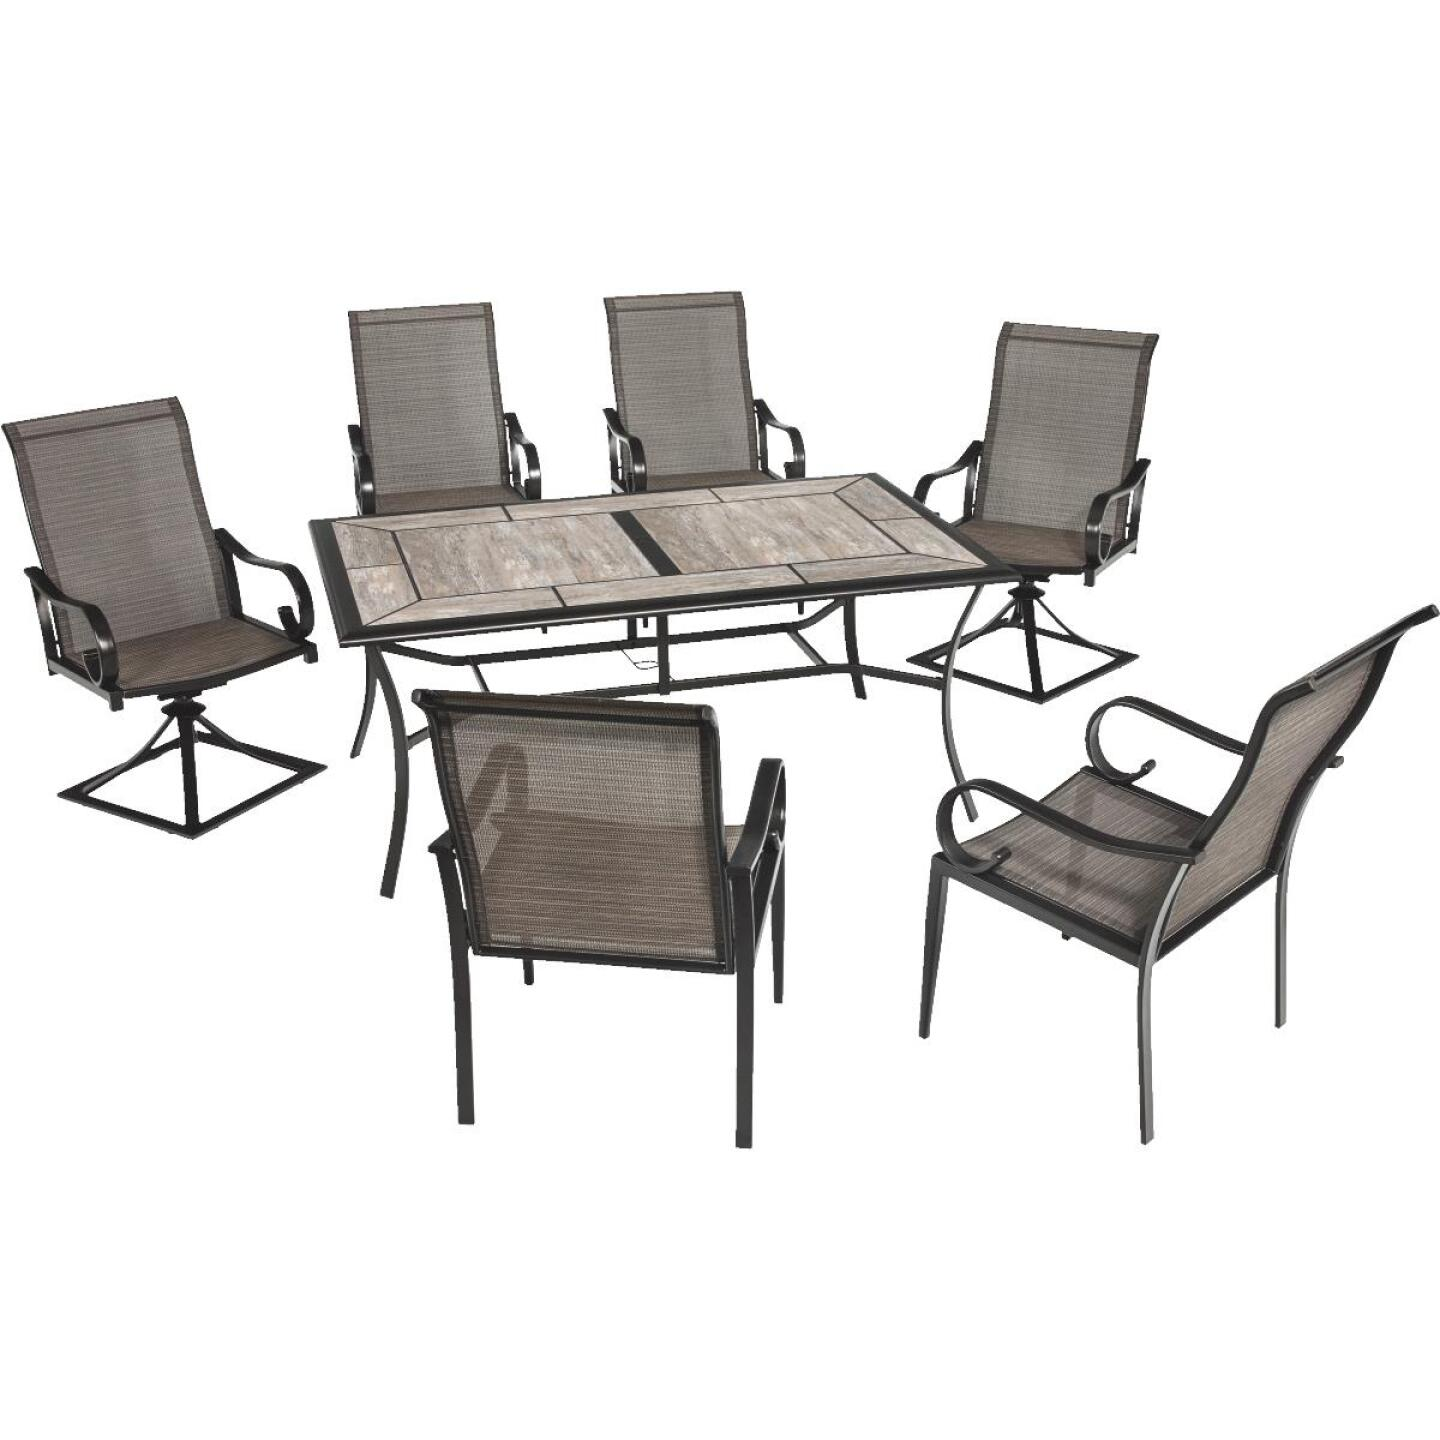 Outdoor Expressions Berkshire 7-Piece Dining Set Image 265